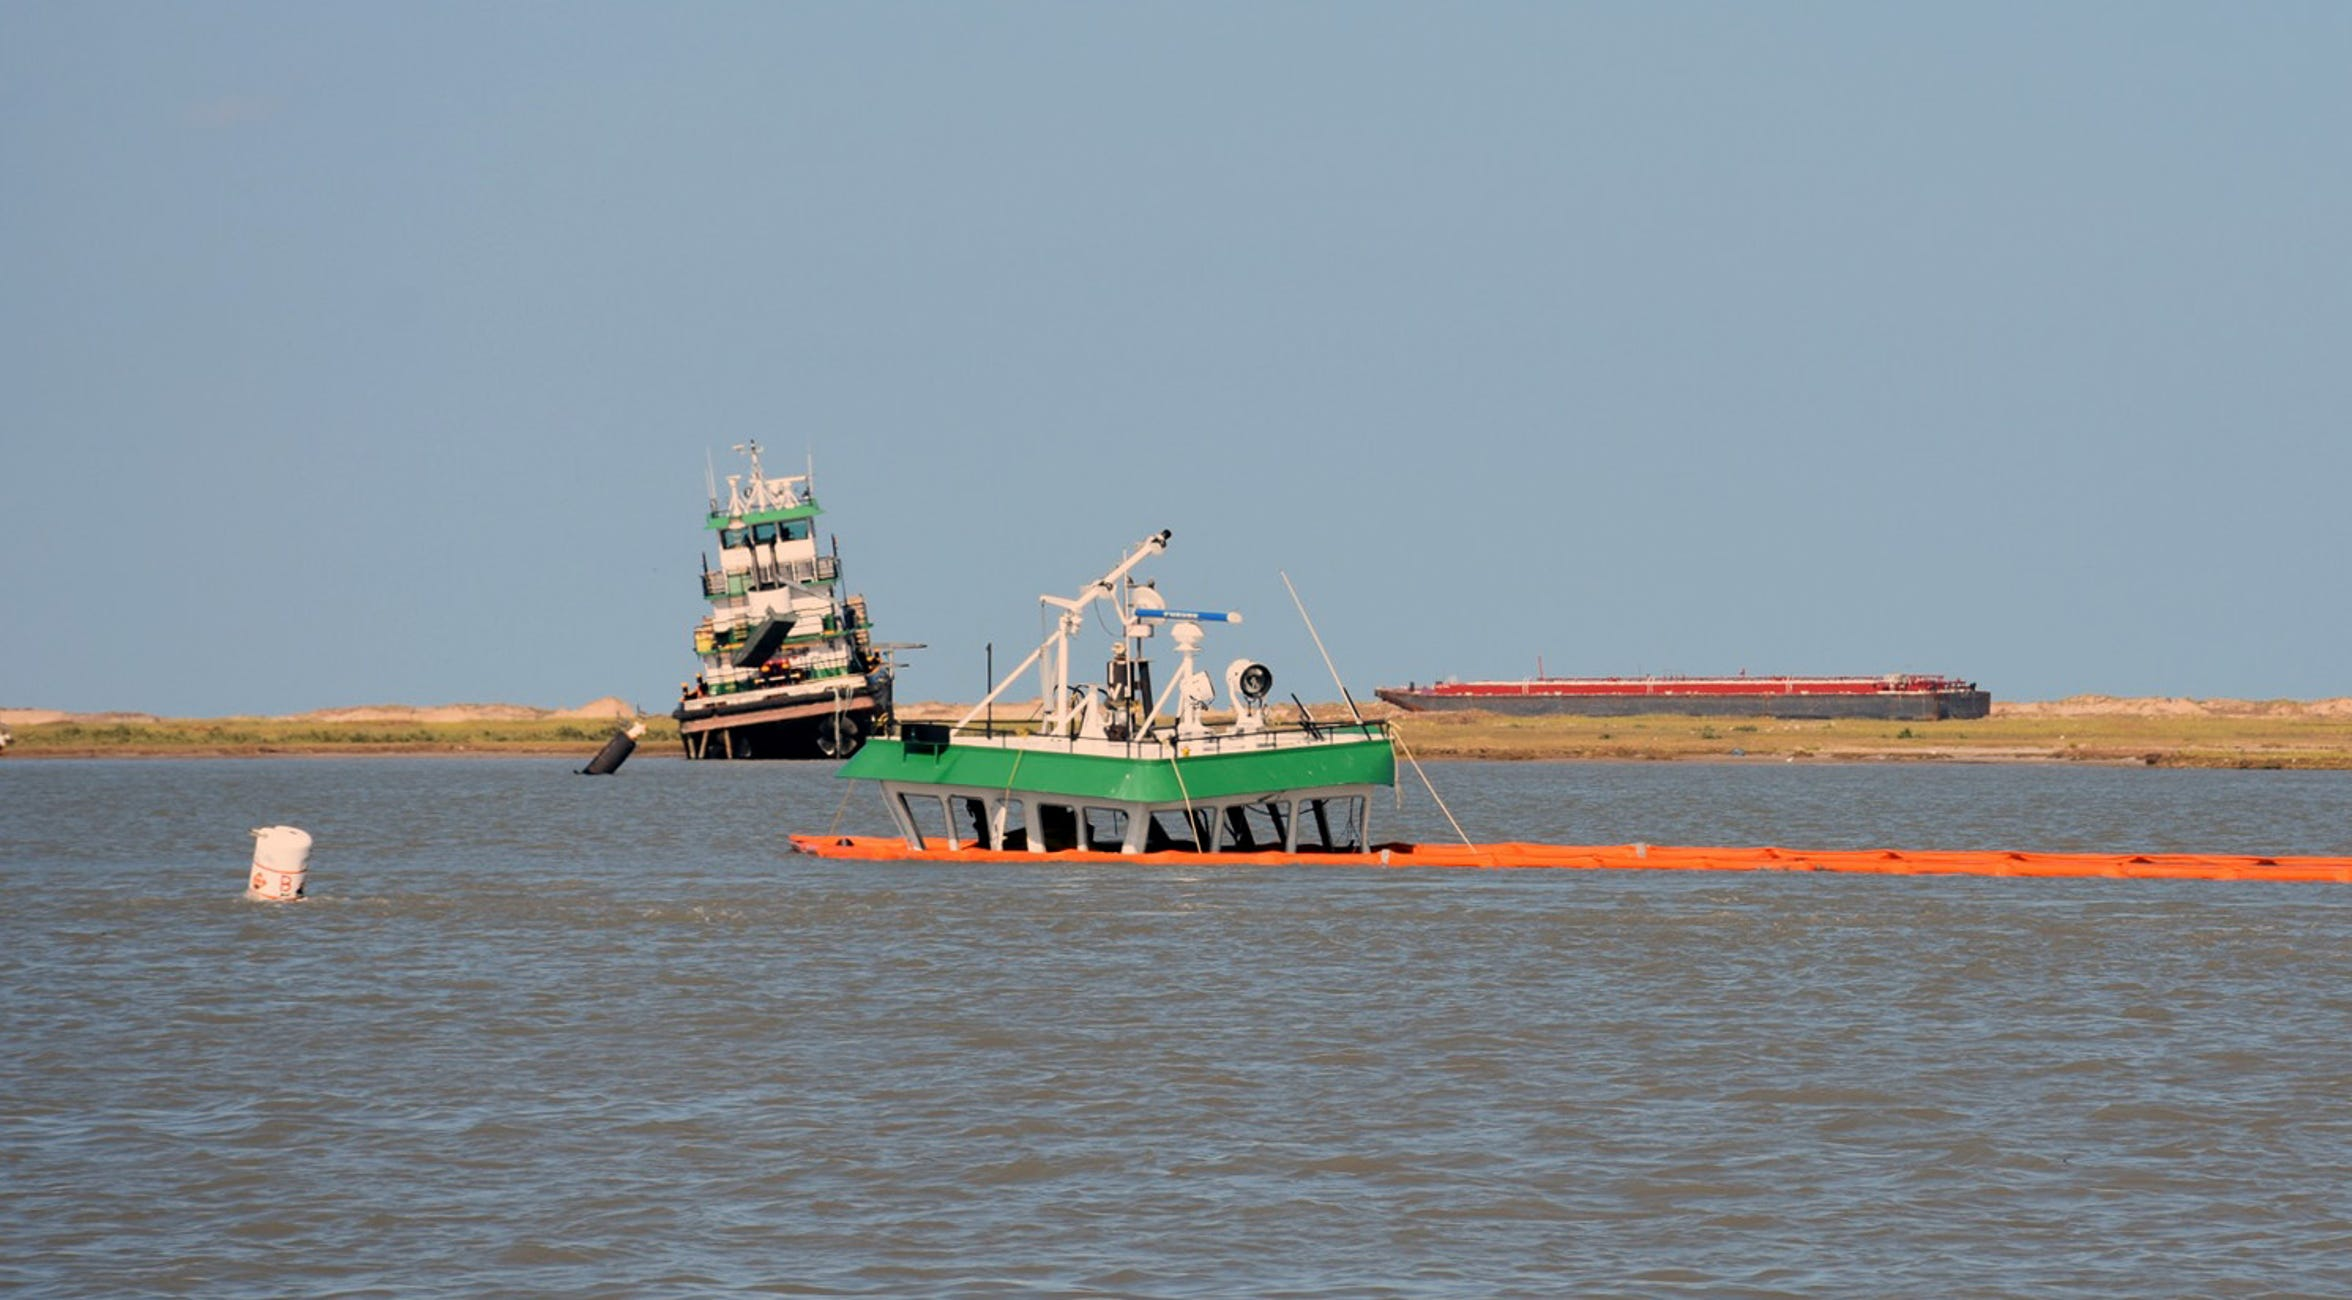 The Texas General Land Office pulled 110 vessels from Coastal Bend waters. The largest spill occurred when 40 gallons of fuel leaked into the Corpus Christi Ship Channel.